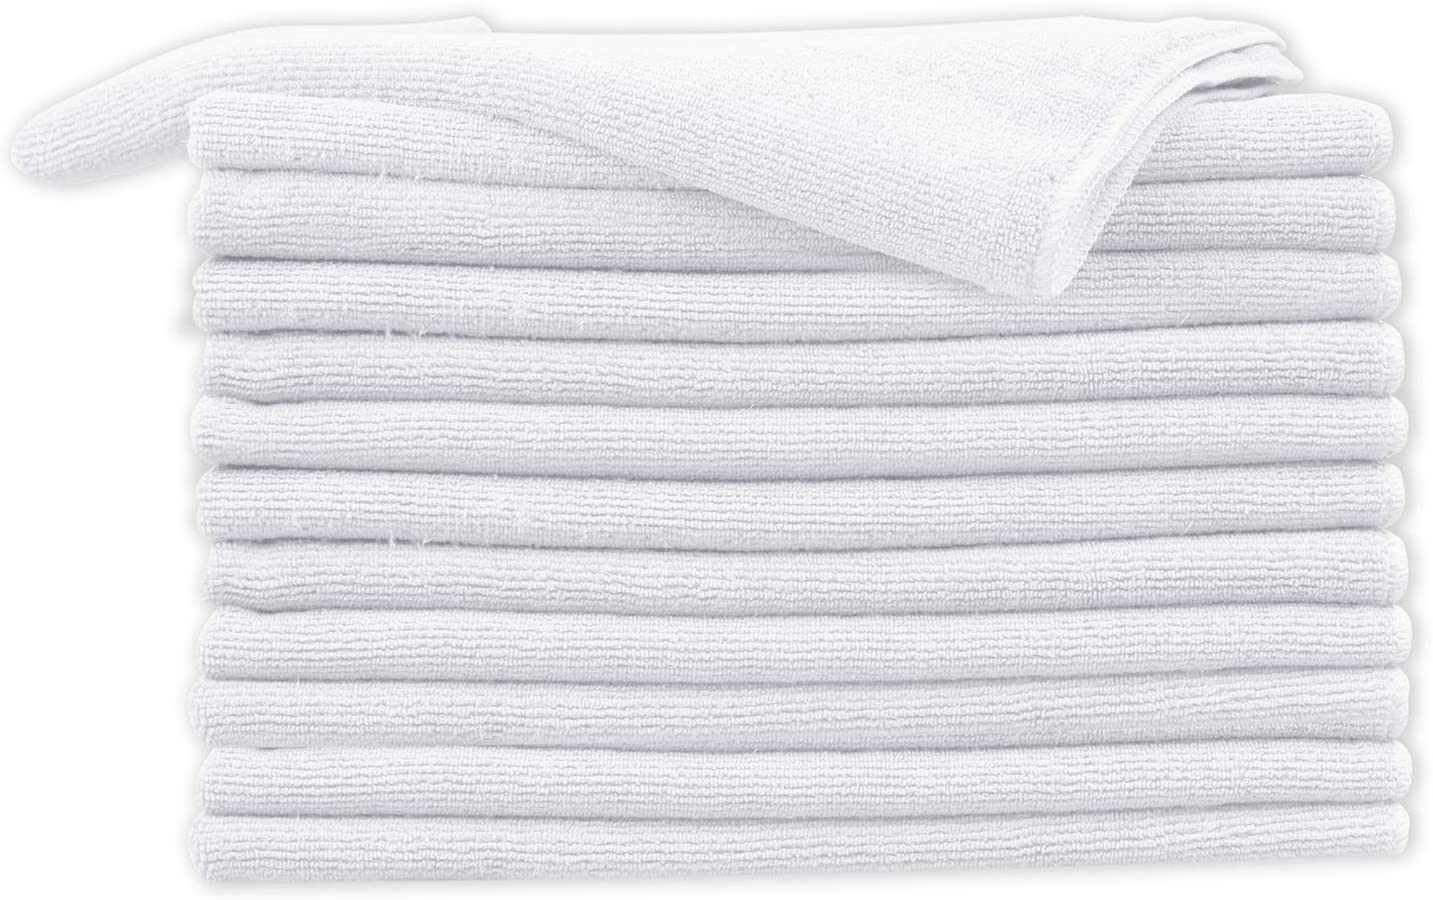 Safety and trust Cartman Microfiber Cleaning Cloth Purpose Towels All Deluxe